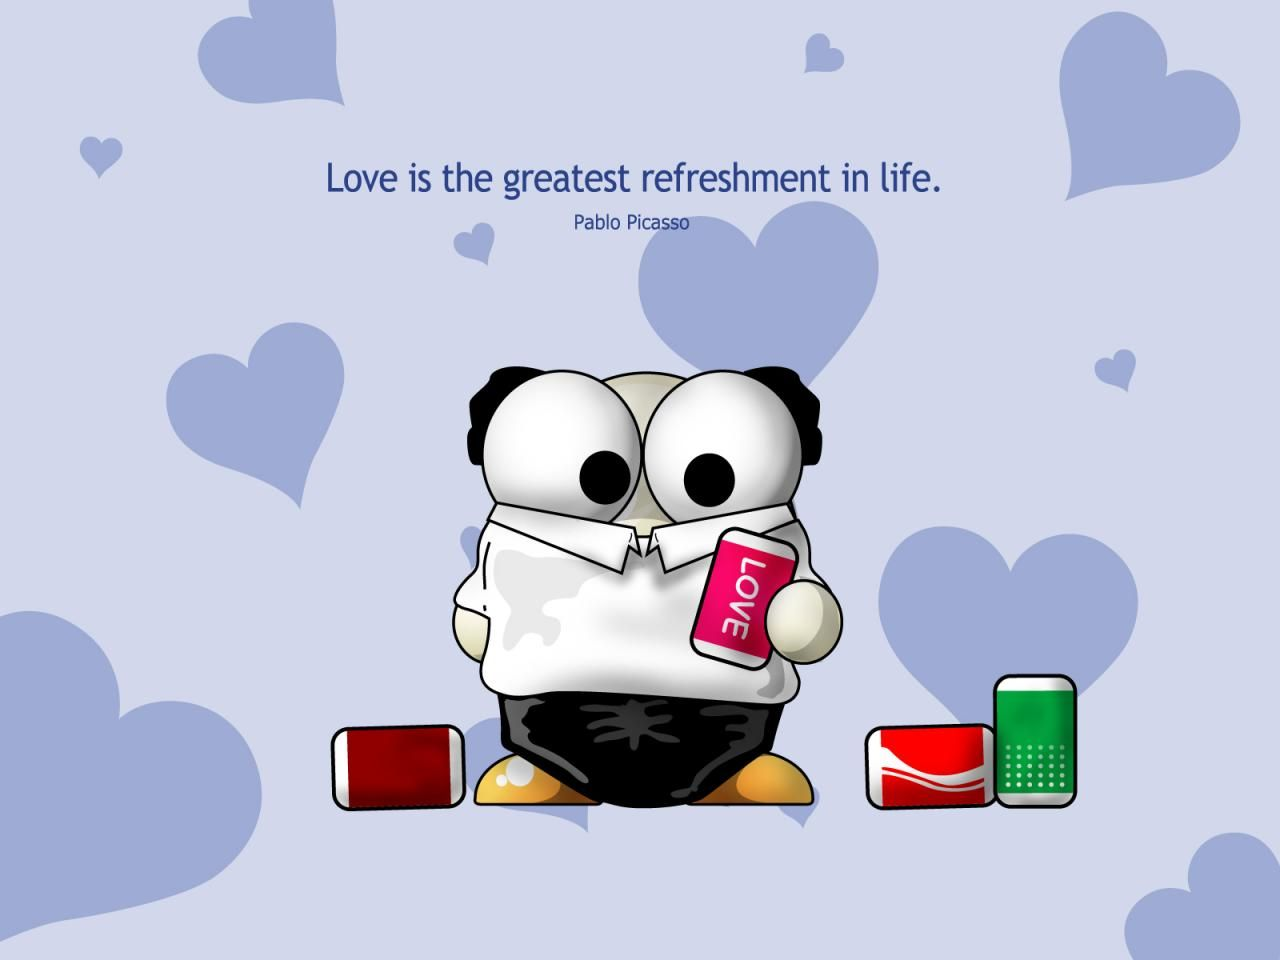 Funny Love Cartoon Images Love Funny Quotes Wallpaper Love Quotes Wallpaper Funny Quotes About Life